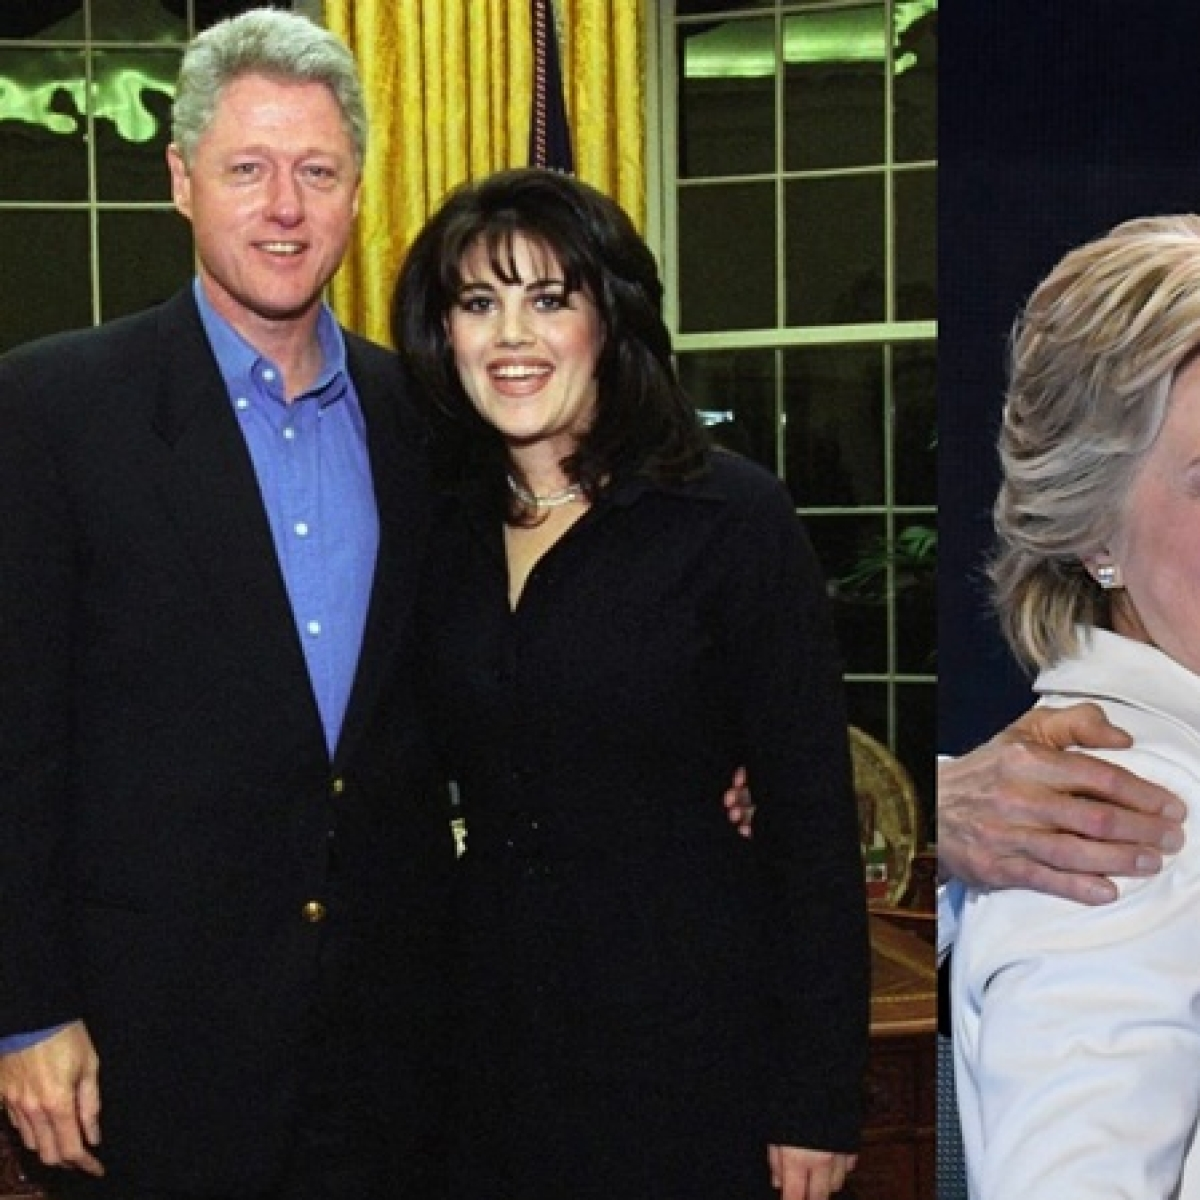 Bill Clinton says fling with Monica Lewinsky was to 'manage anxiety'